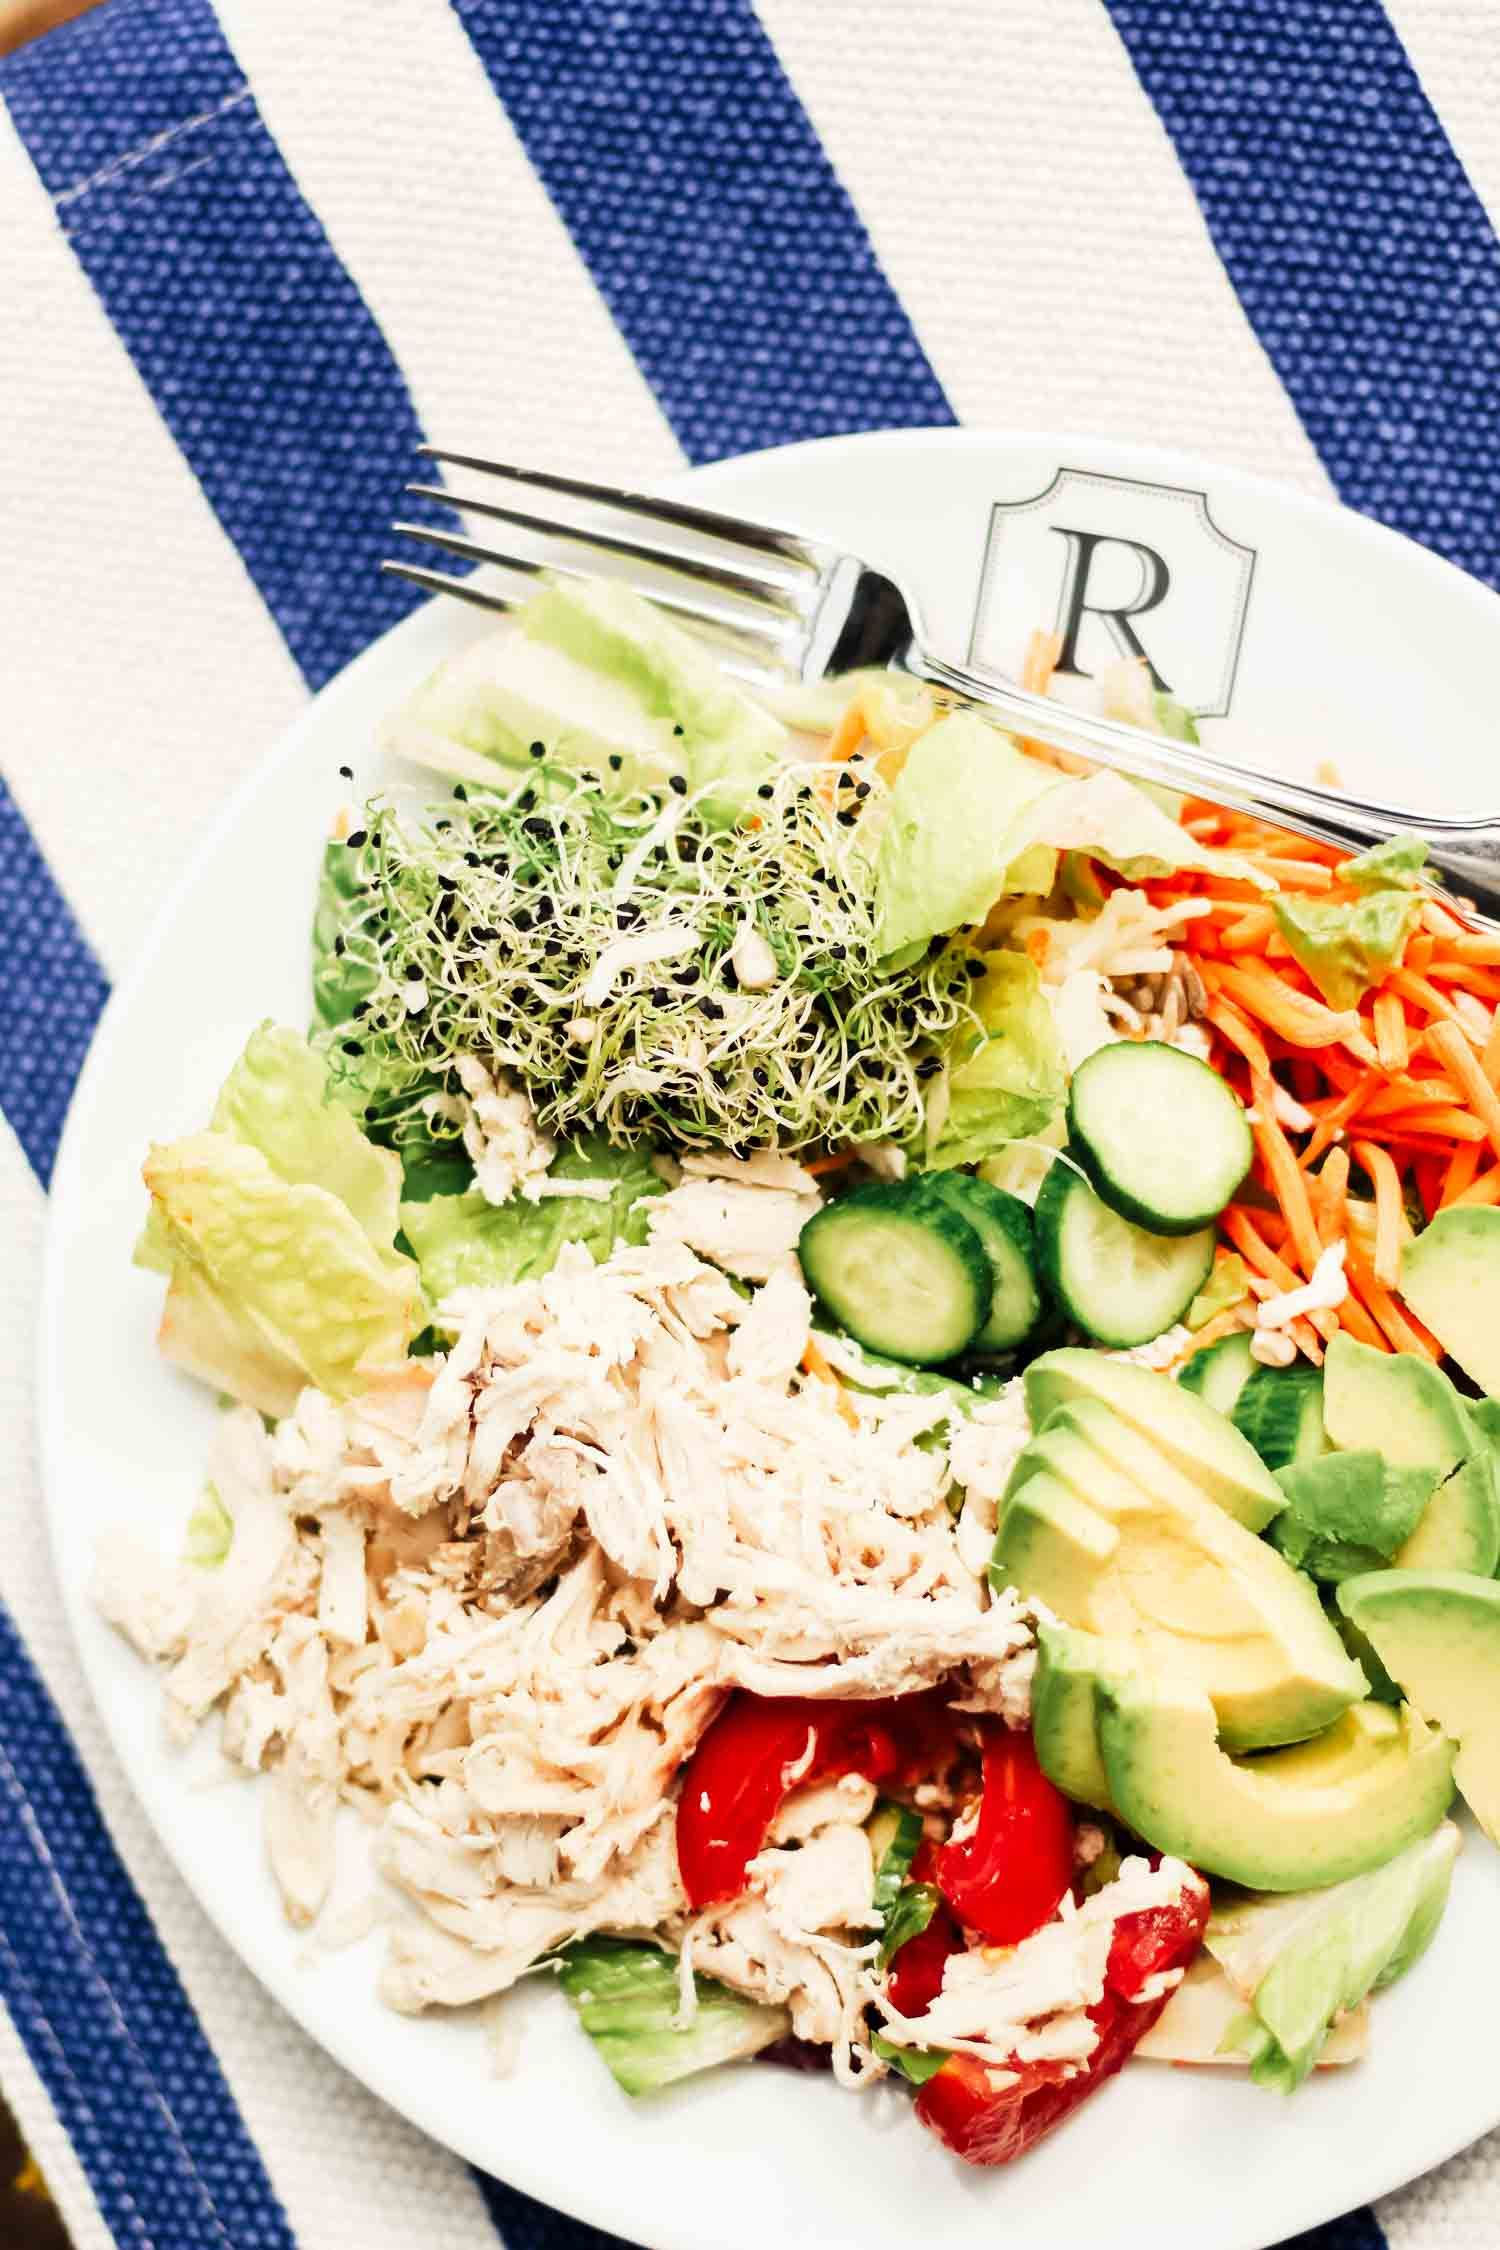 Kardashian Salad Recipe | Healthy Meals | Chef salad ...